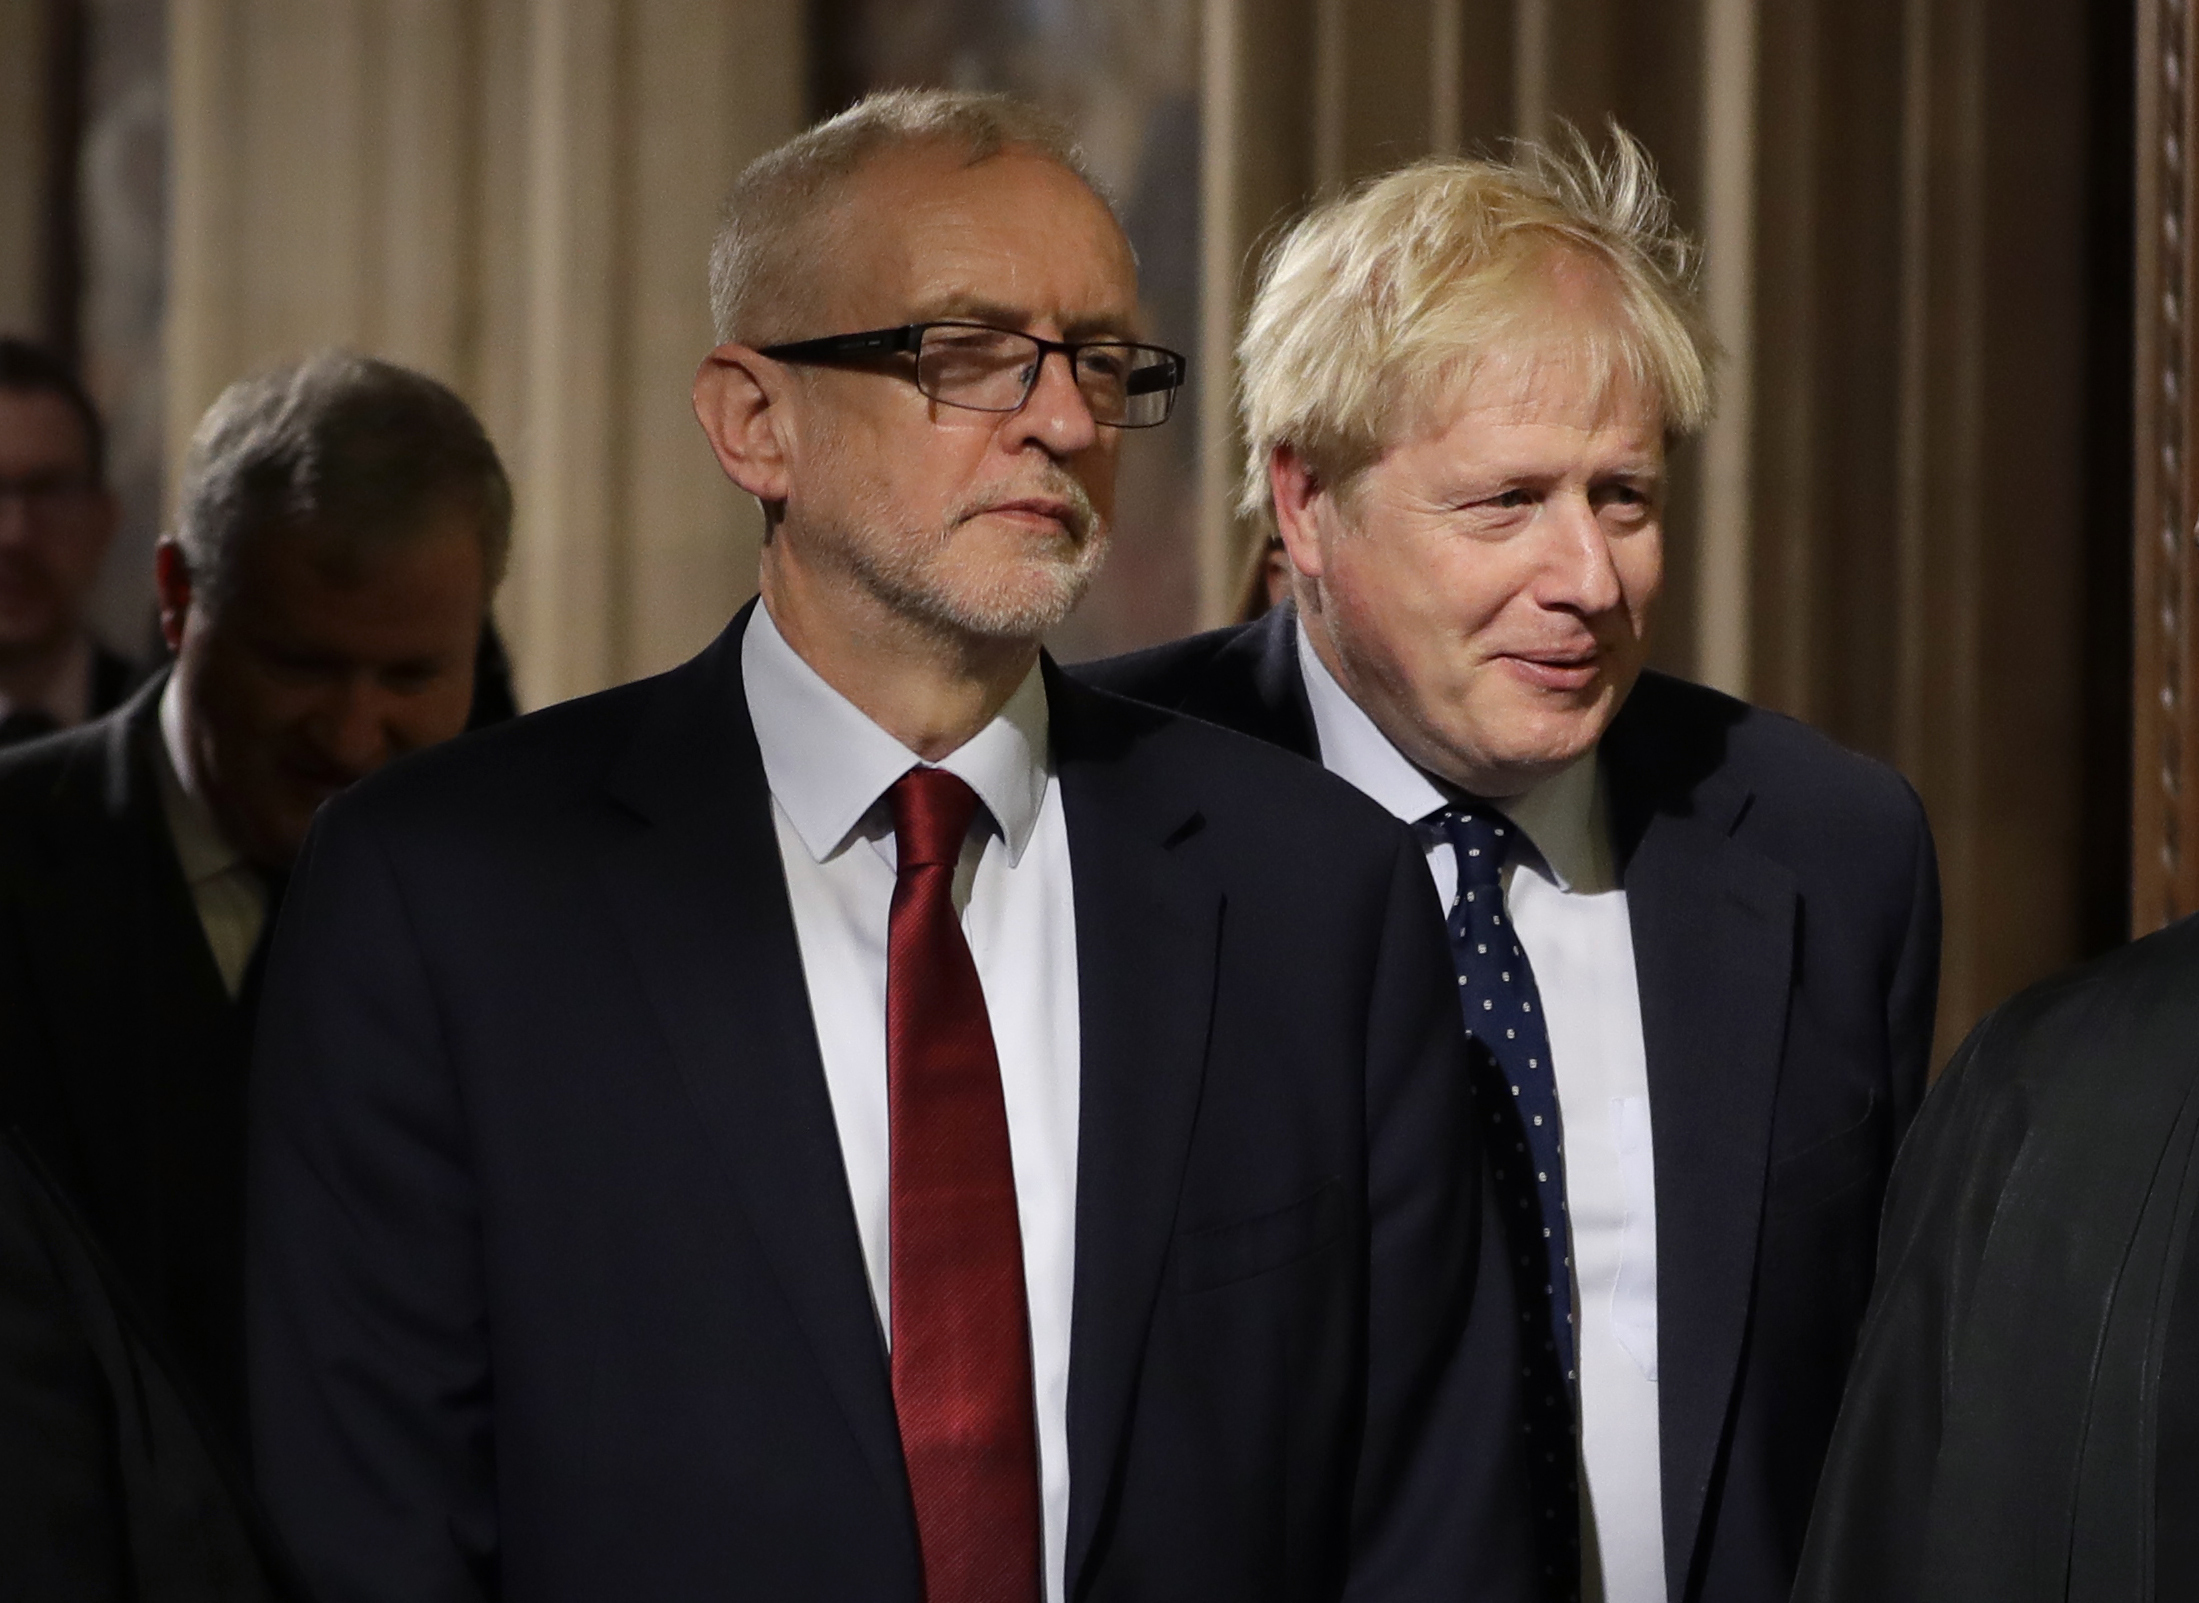 Prime Minister Boris Johnson (right) Labour leader Jeremy Corbyn